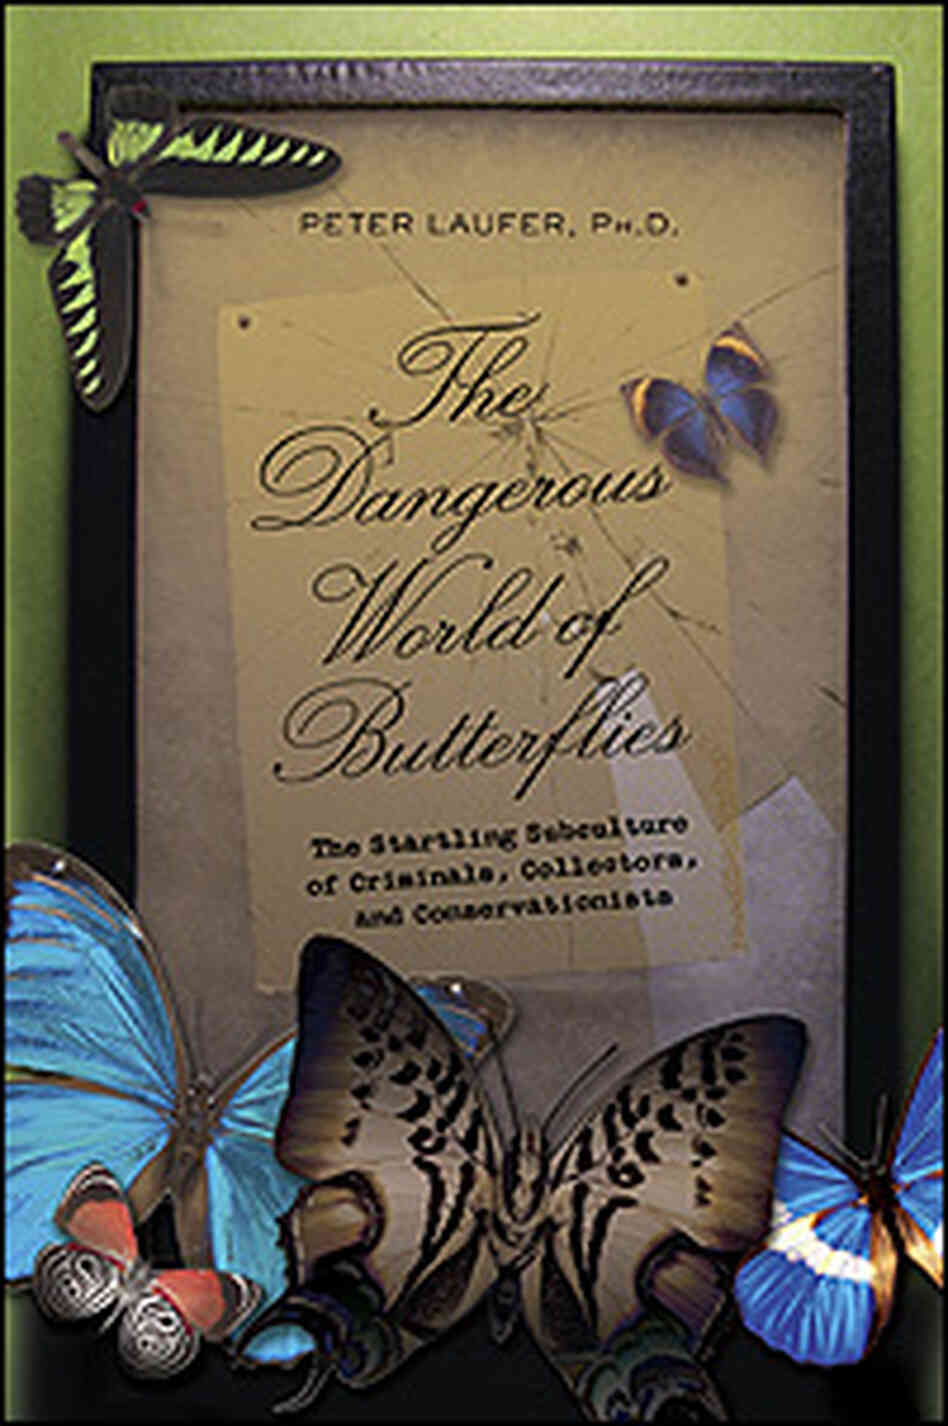 'The Dangerous World Of Butterflies' Cover